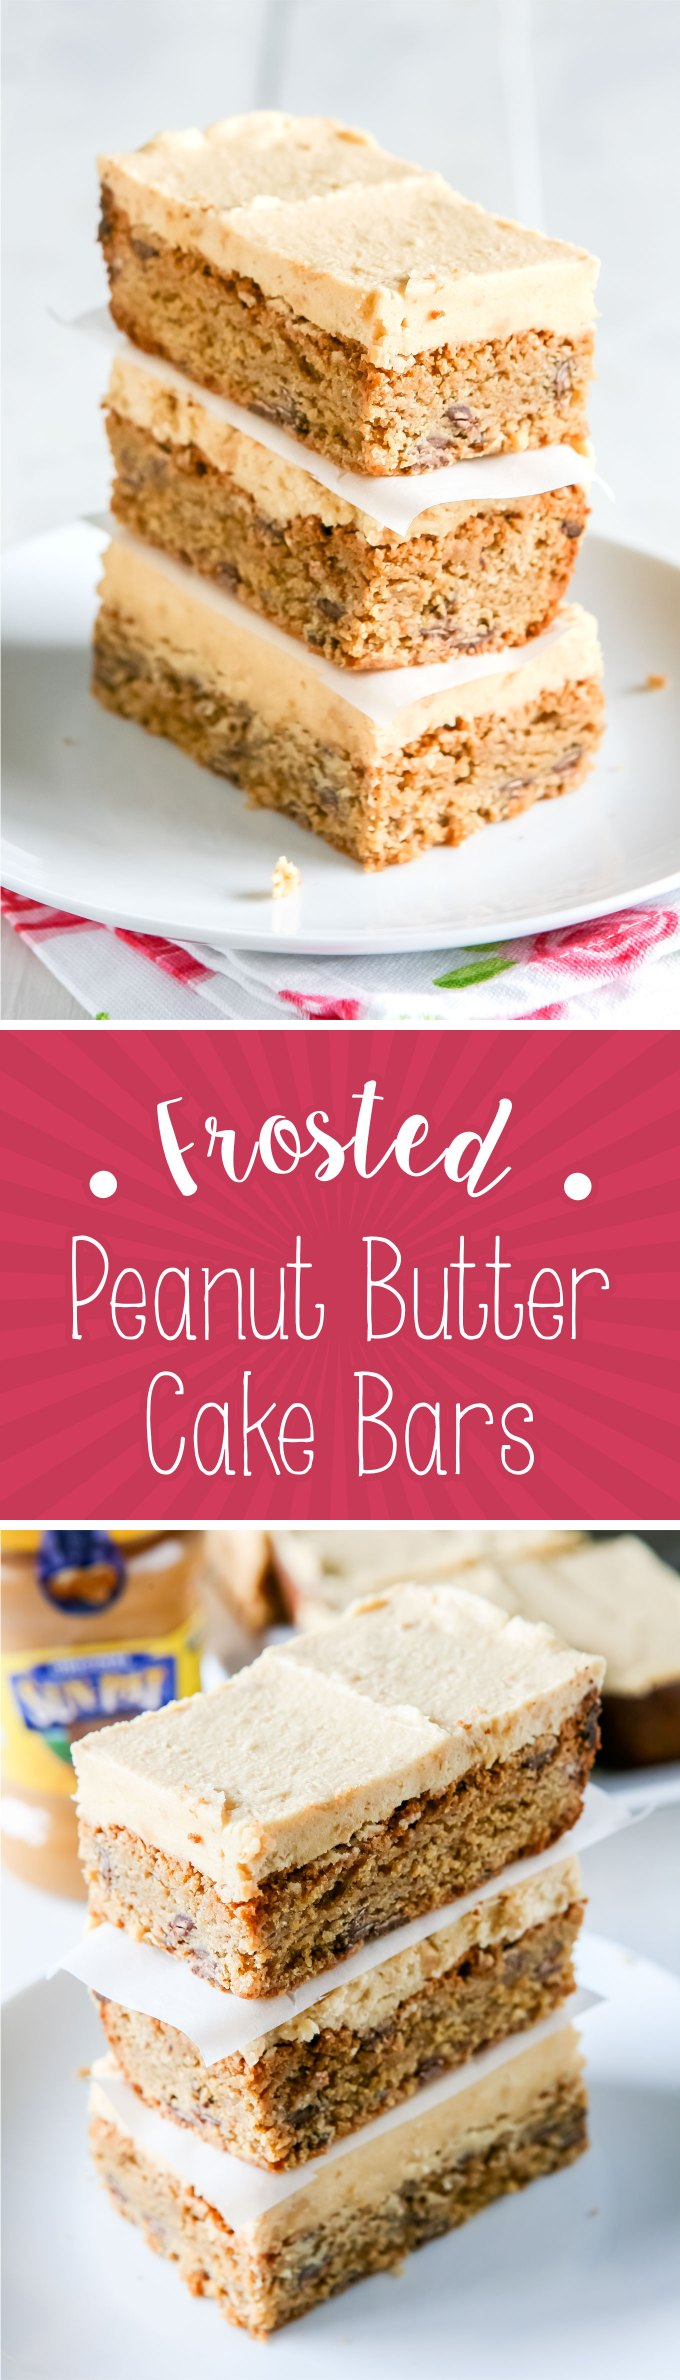 Frosted Peanut Butter Cake Bars Recipe by Sweet2EatBaking.com | These Frosted Peanut Butter Cake Bars are a peanut butter lovers dream! These cake bars are jam packed with peanut butter and milk chocolate chips.